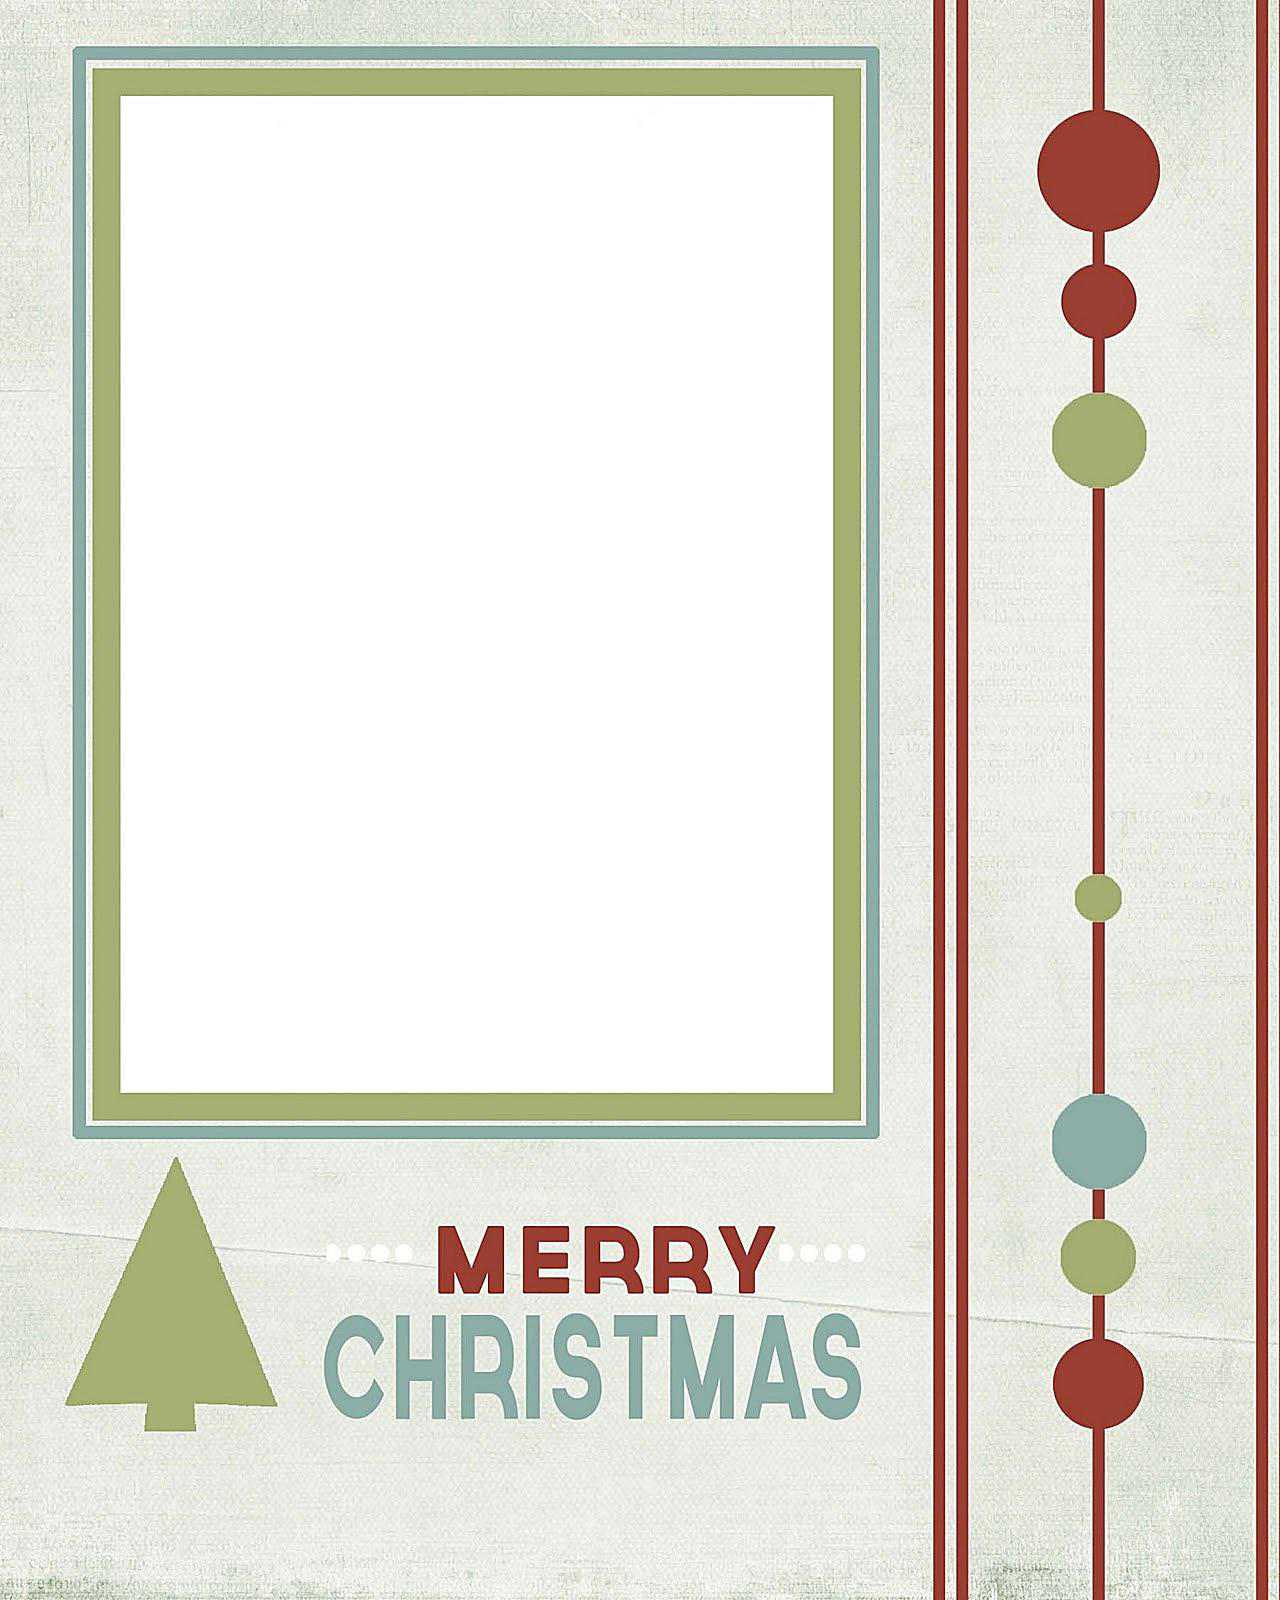 21 Standard 21X21 Christmas Card Template Free PSD File for 21X21 With Regard To 4x6 Photo Card Template Free